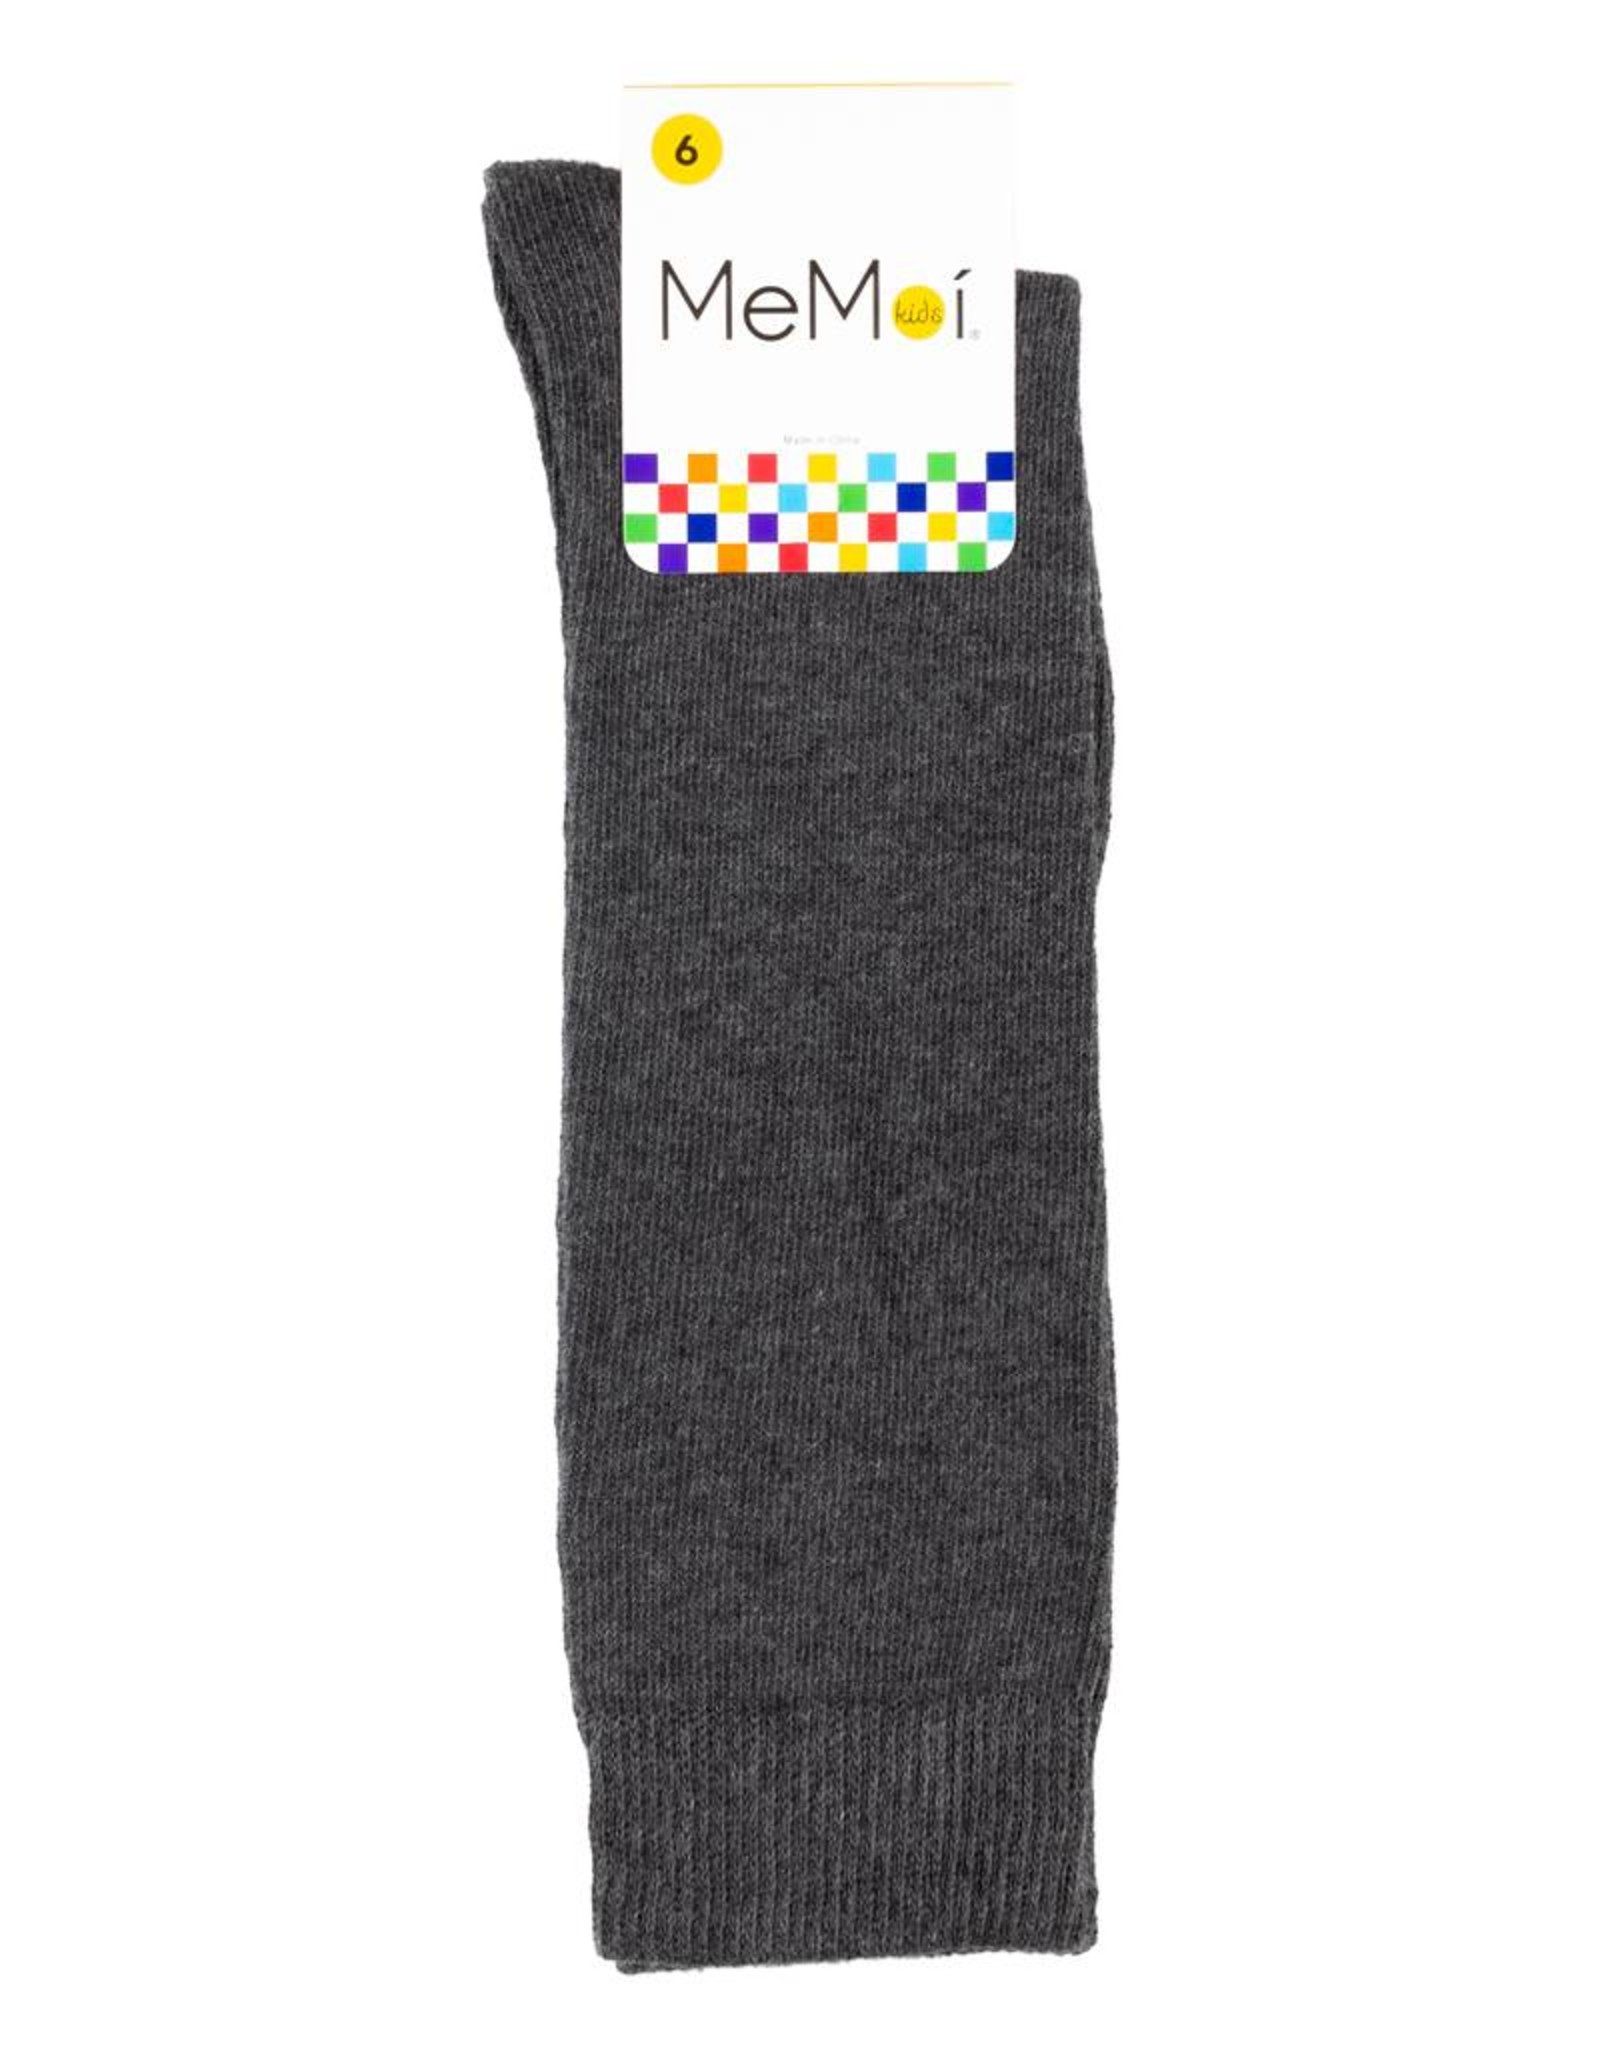 Memoi Memoi Cotton Knee Socks